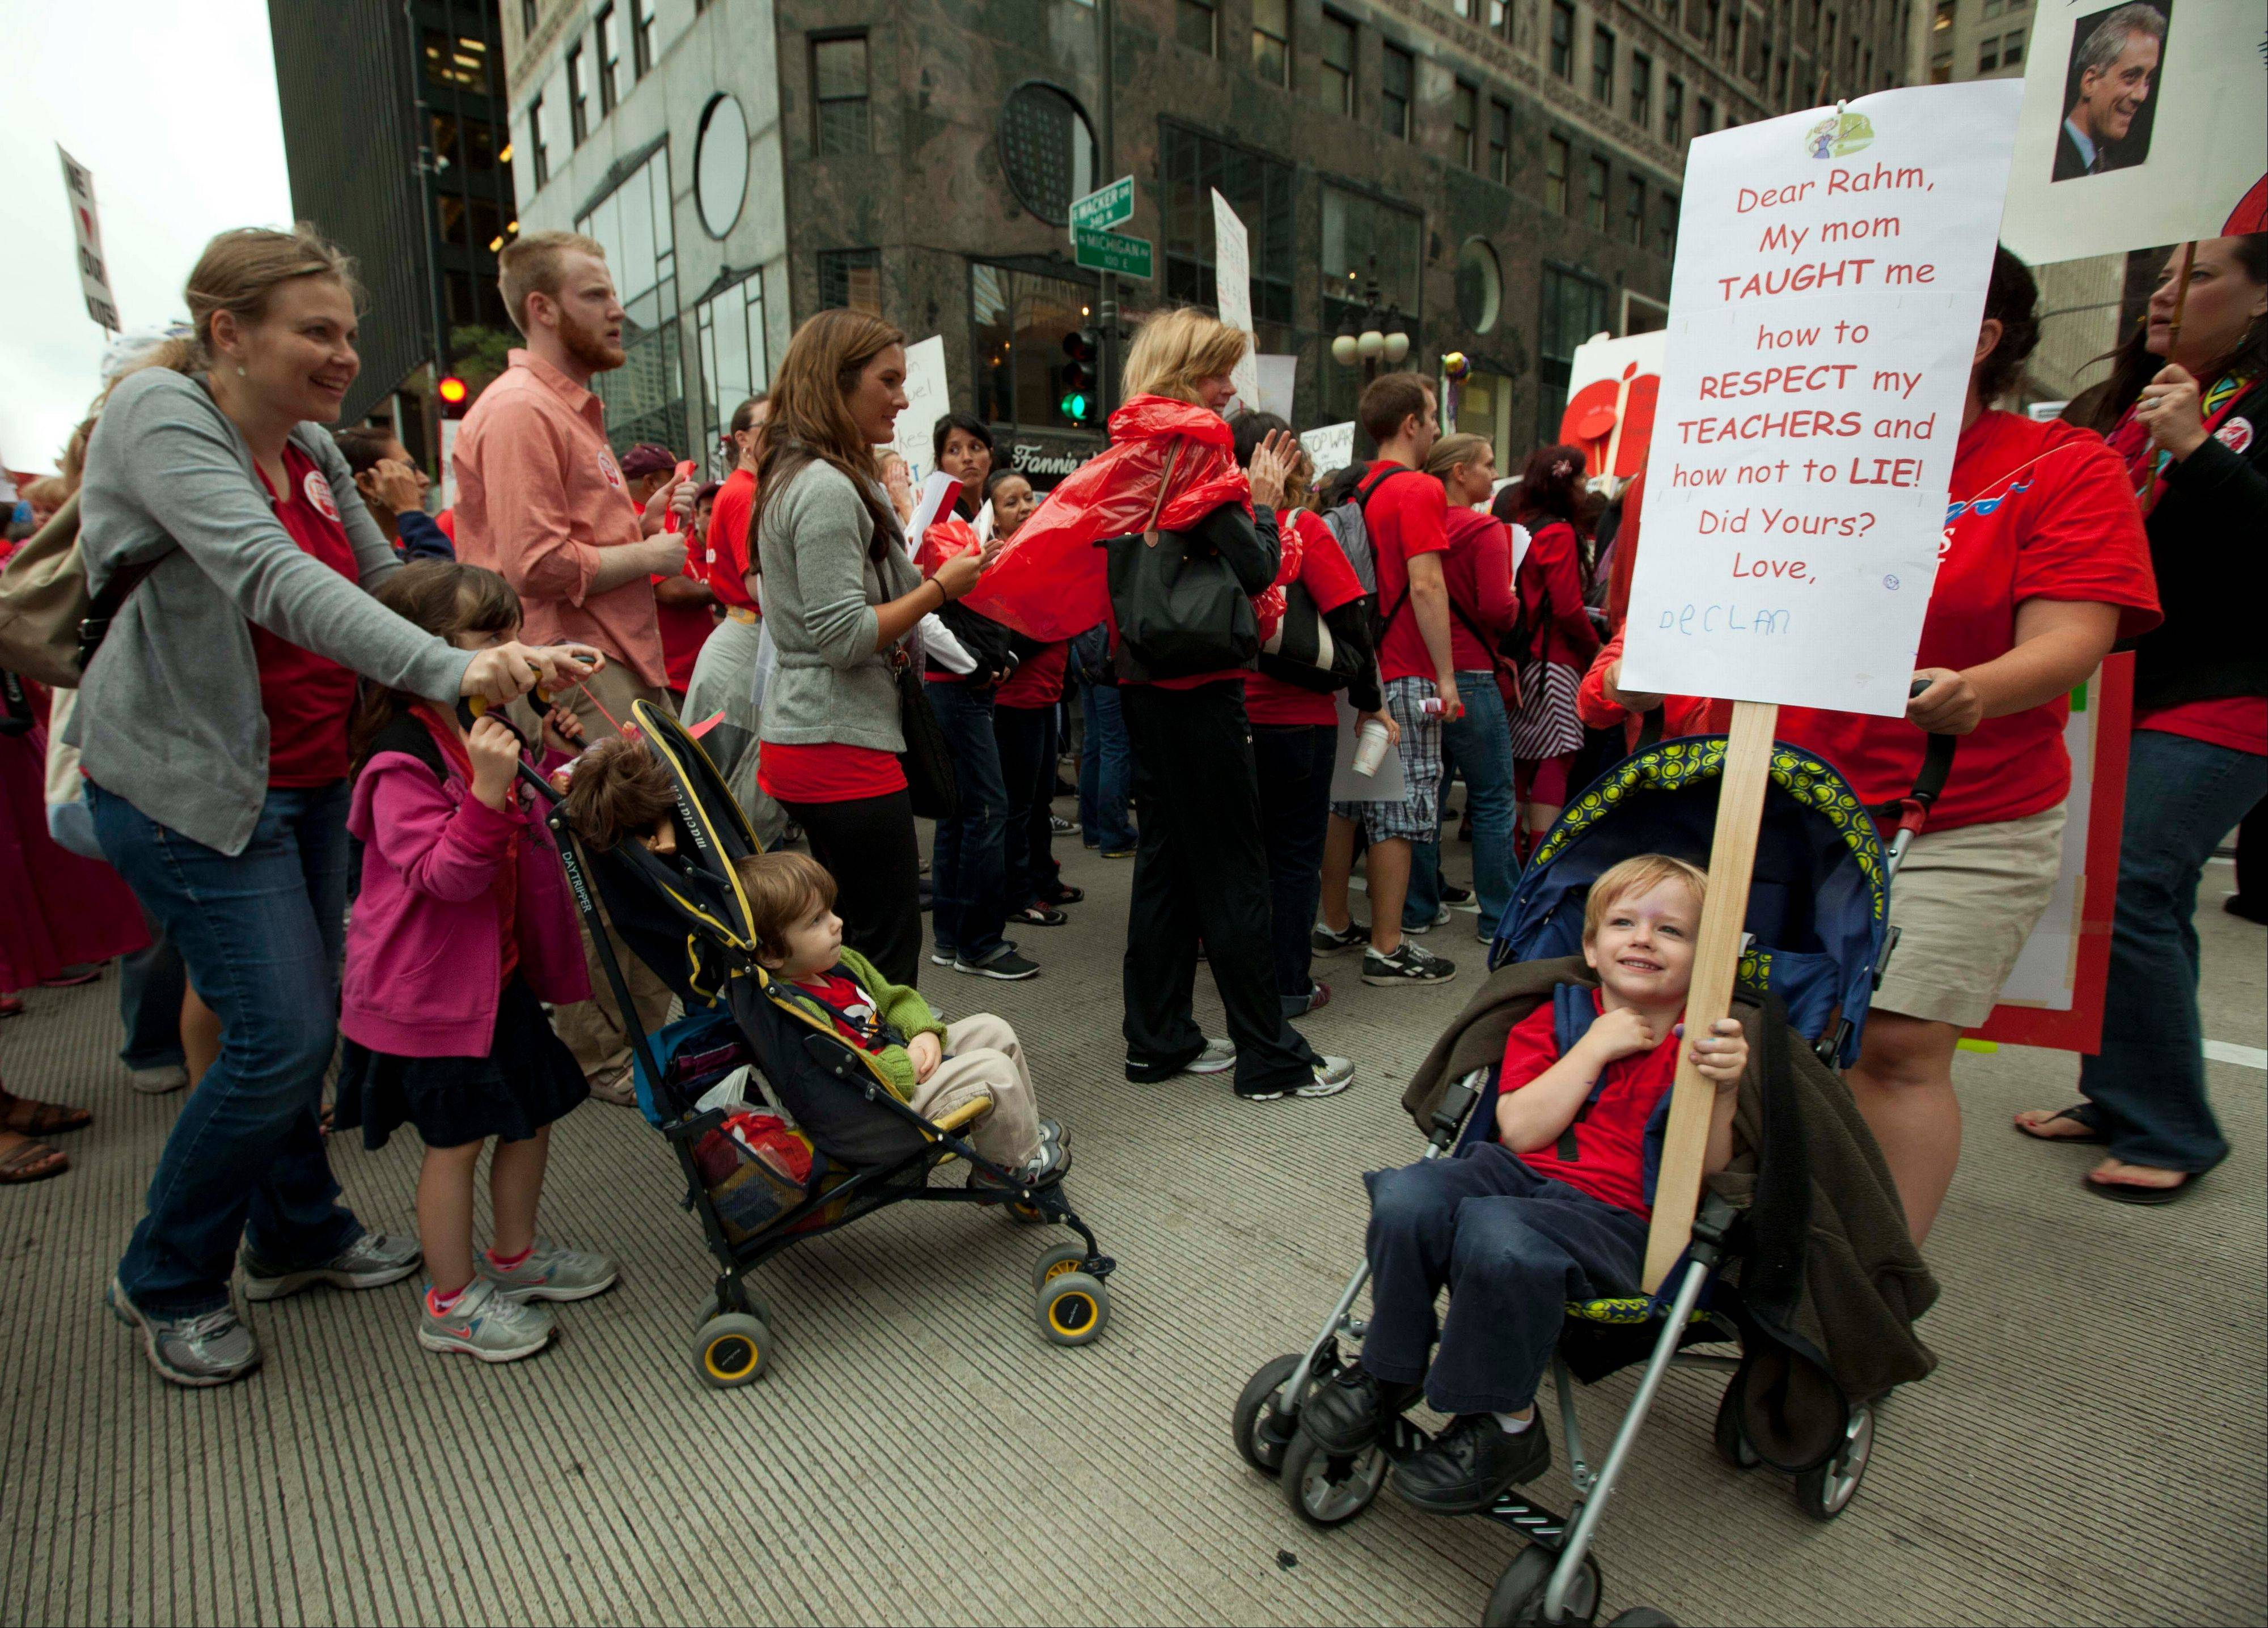 Children in strollers join thousands of public school teachers rallying outside the Hyatt Regency Hotel on Thursday. The teachers were protesting against Penny Pritzker, whom they accuse of benefiting from her position on the boards of both the Chicago Board of Education and Hyatt Hotels.